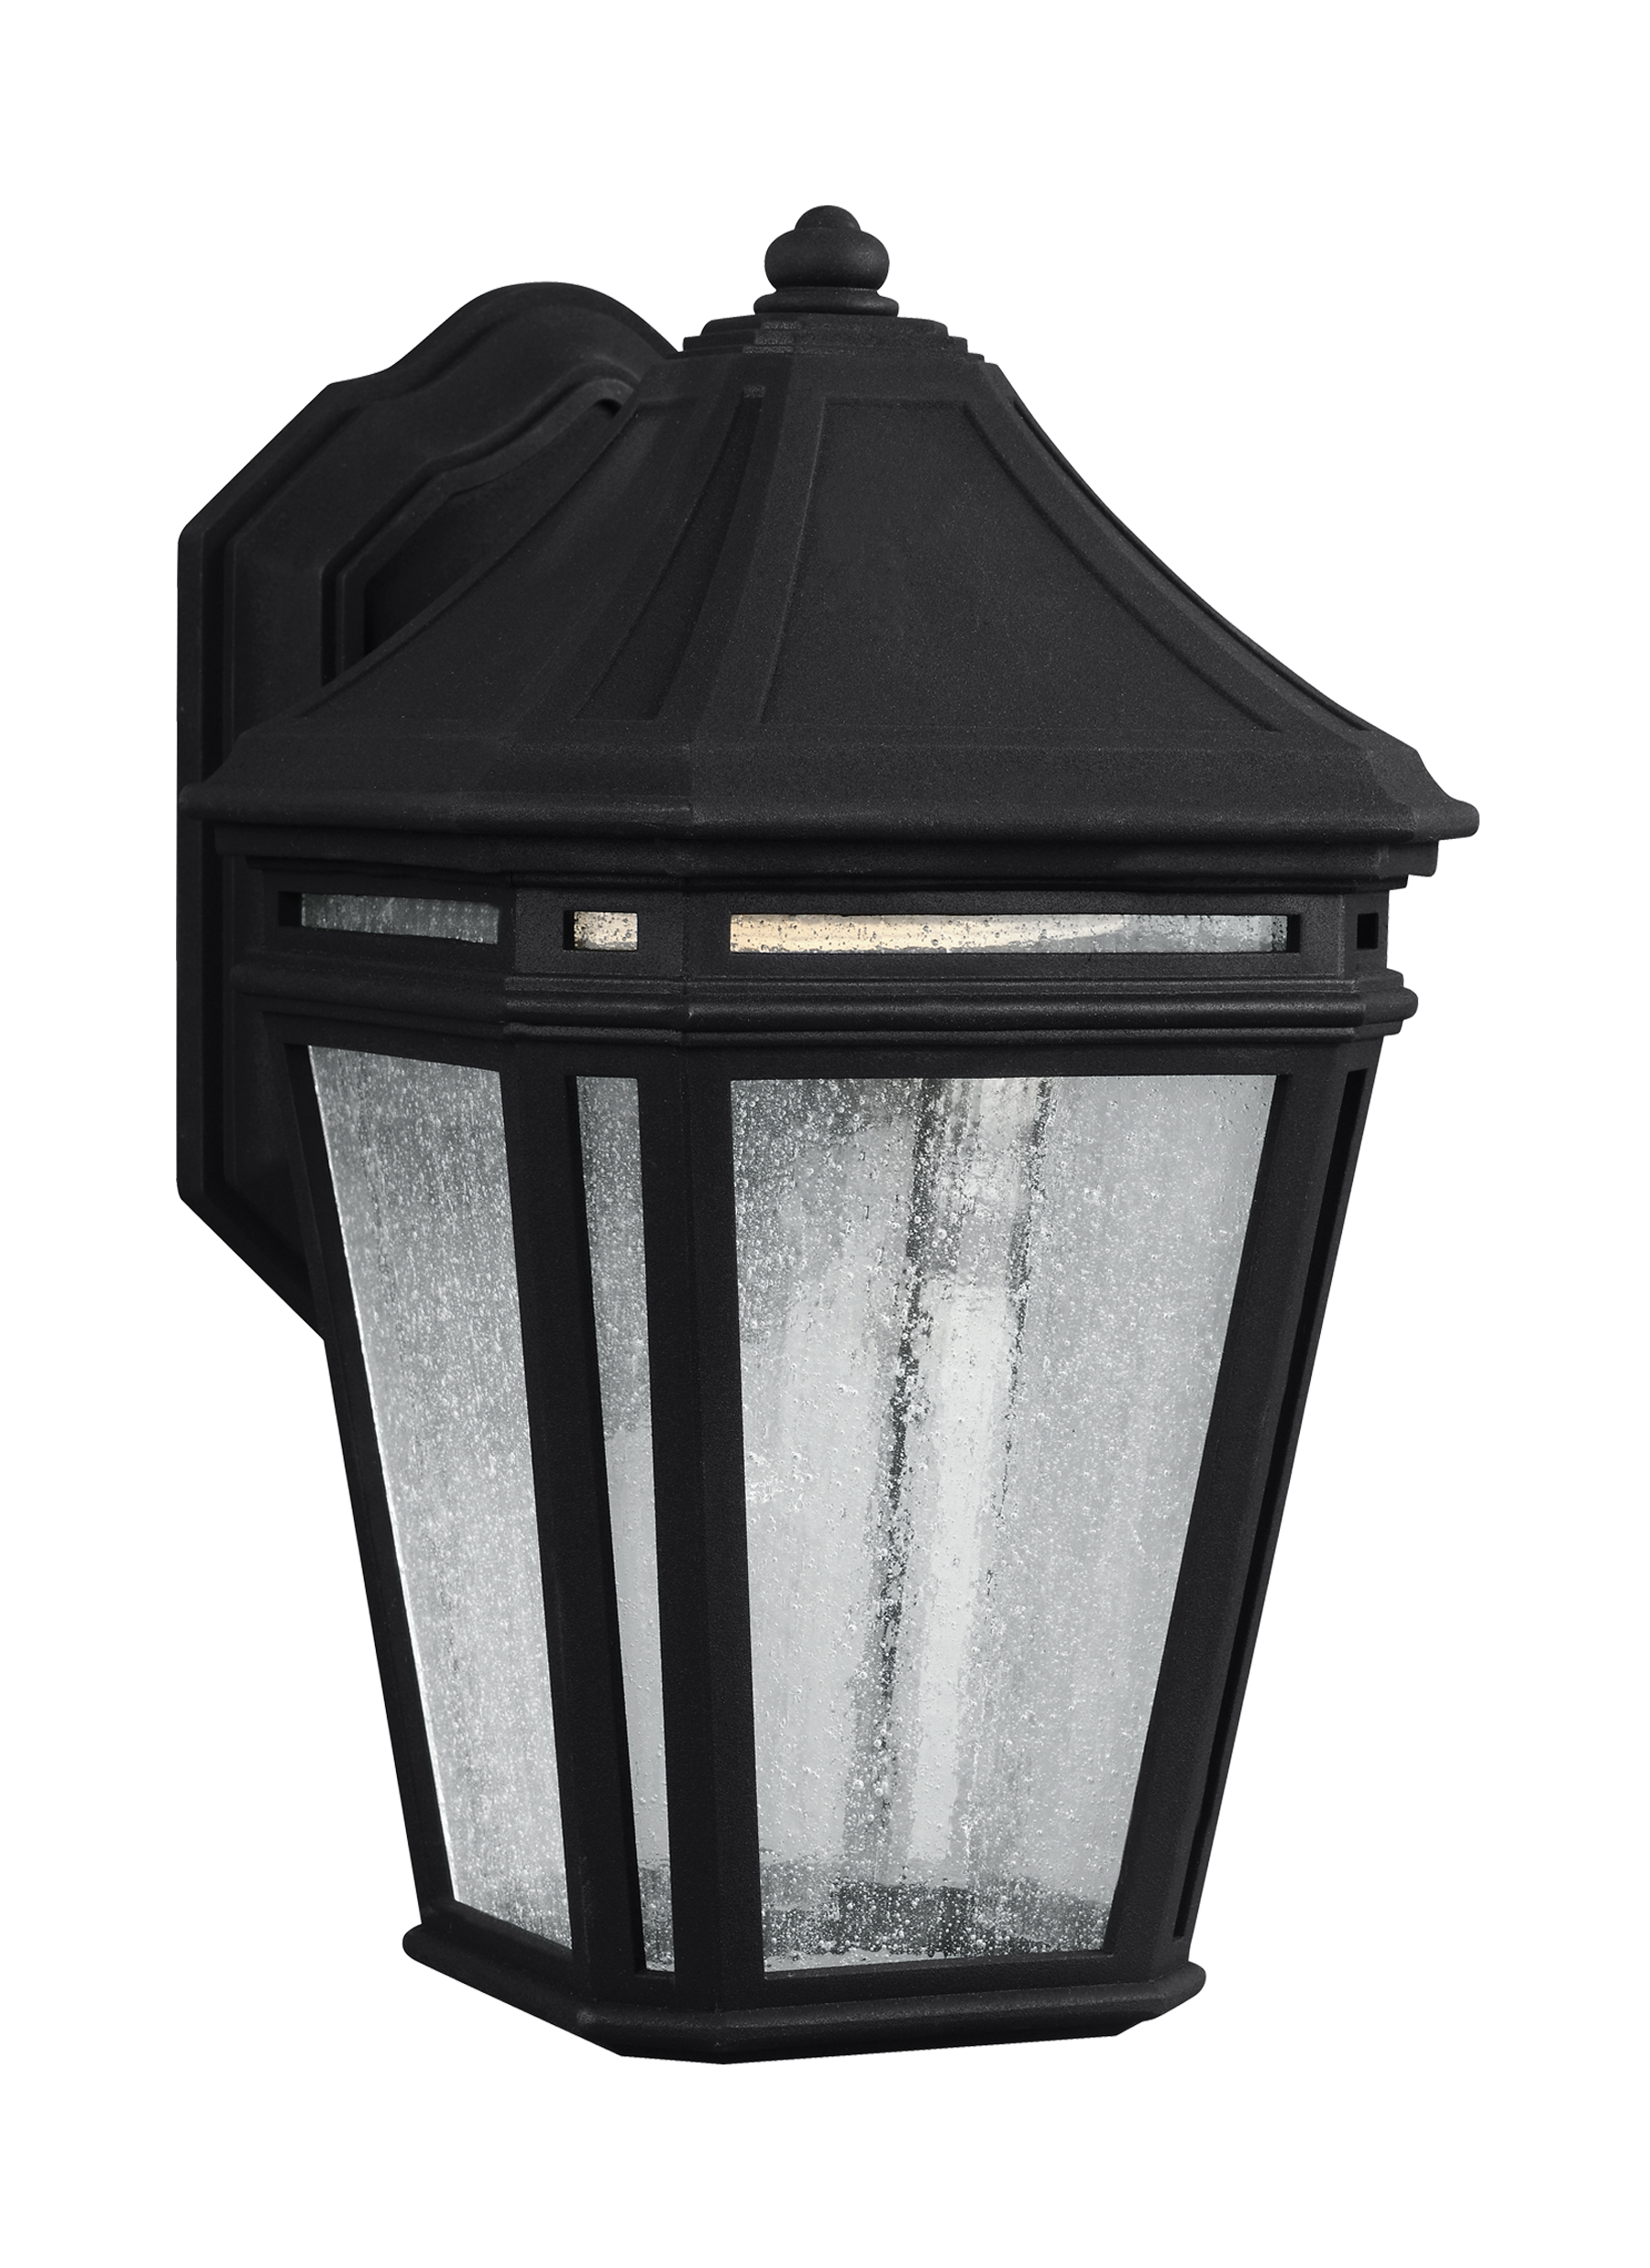 sconce sconces outdoor item gate from on alibaba lighting aliexpress exterior lights lamp fixture basement patio light up led floodlights down stainless wall com in